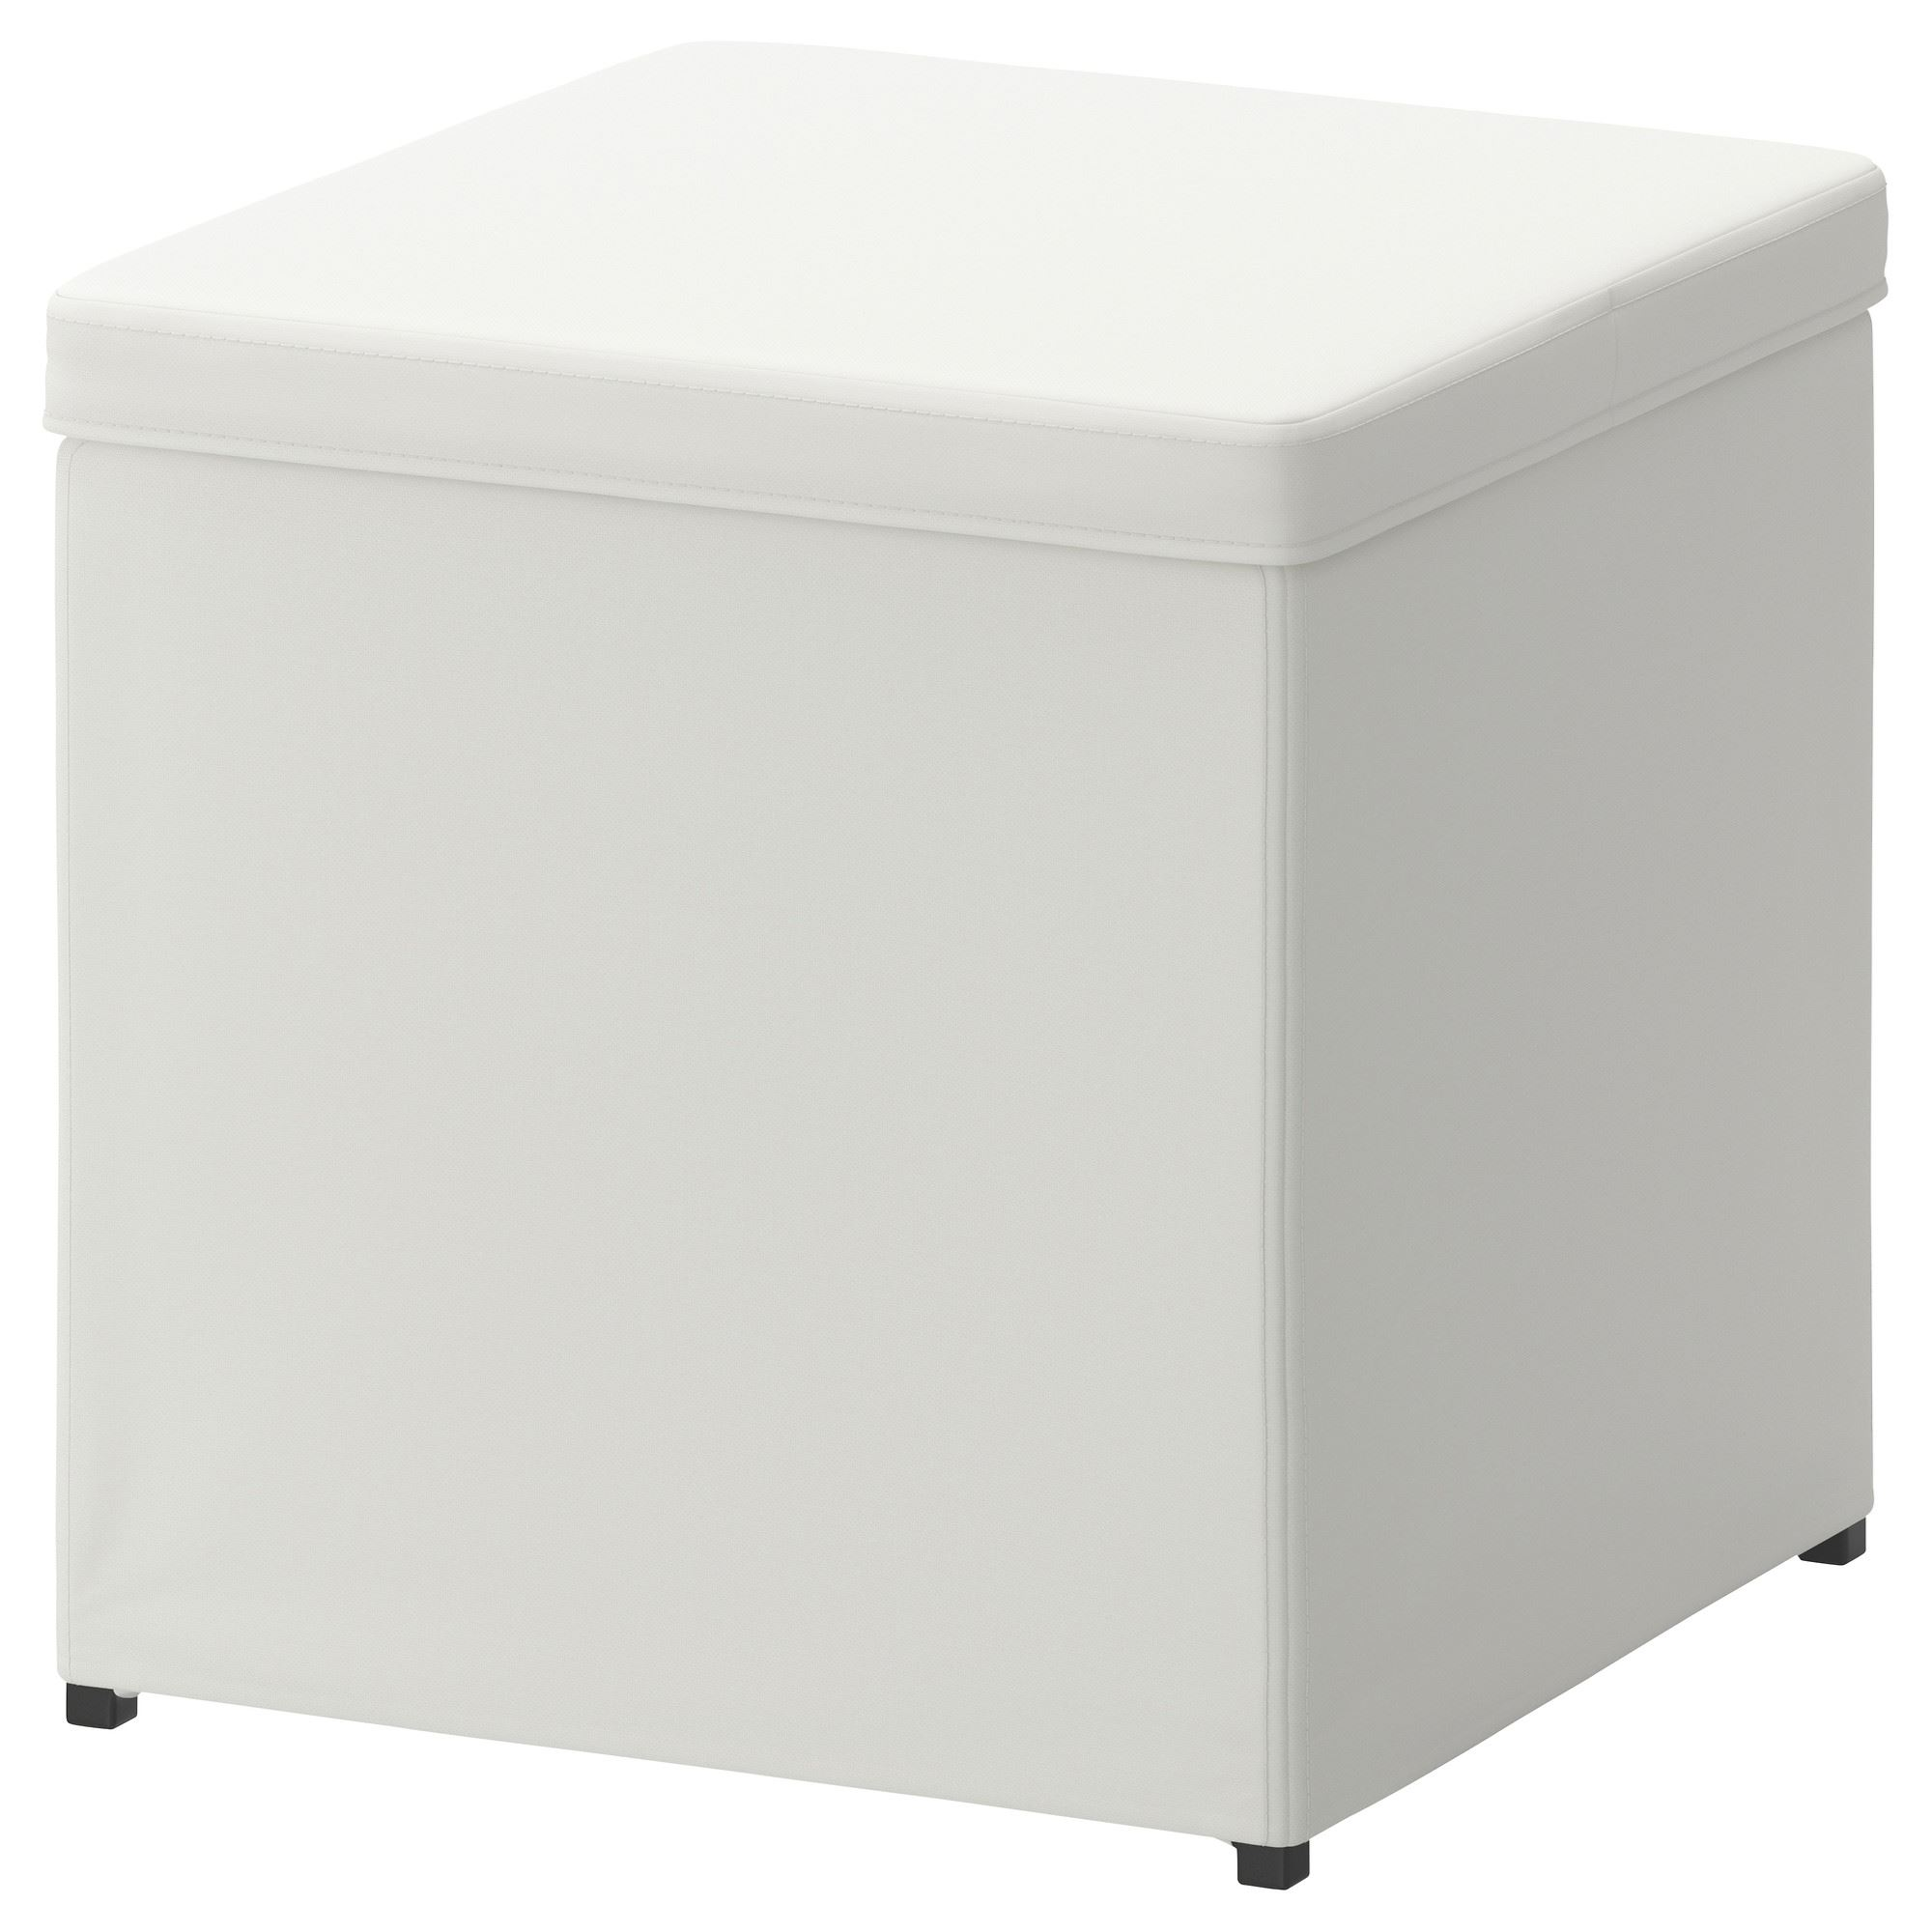 BOSNAS footstool with storage ransta white   IKEA Living Room on cocktail ottoman ikea, cube stool ikea, accent chair ikea, bench ikea, cube cabinet ikea, outdoor ottoman ikea, poufs ikea, cube storage ikea,